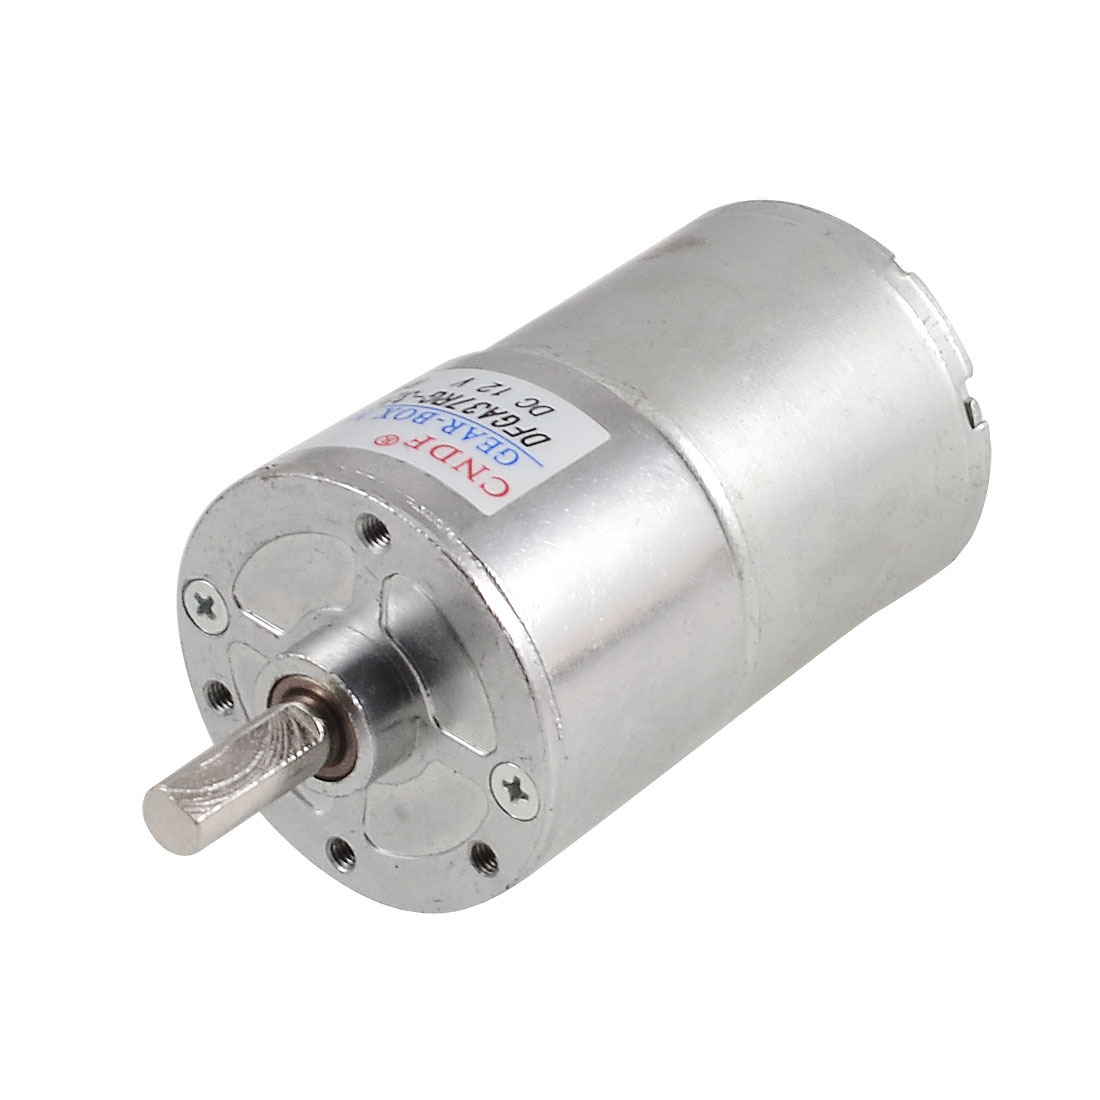 DC 12V 100 RPM 37mm Dia Permanent Magnetic Planet Gear Box Motor Ratio